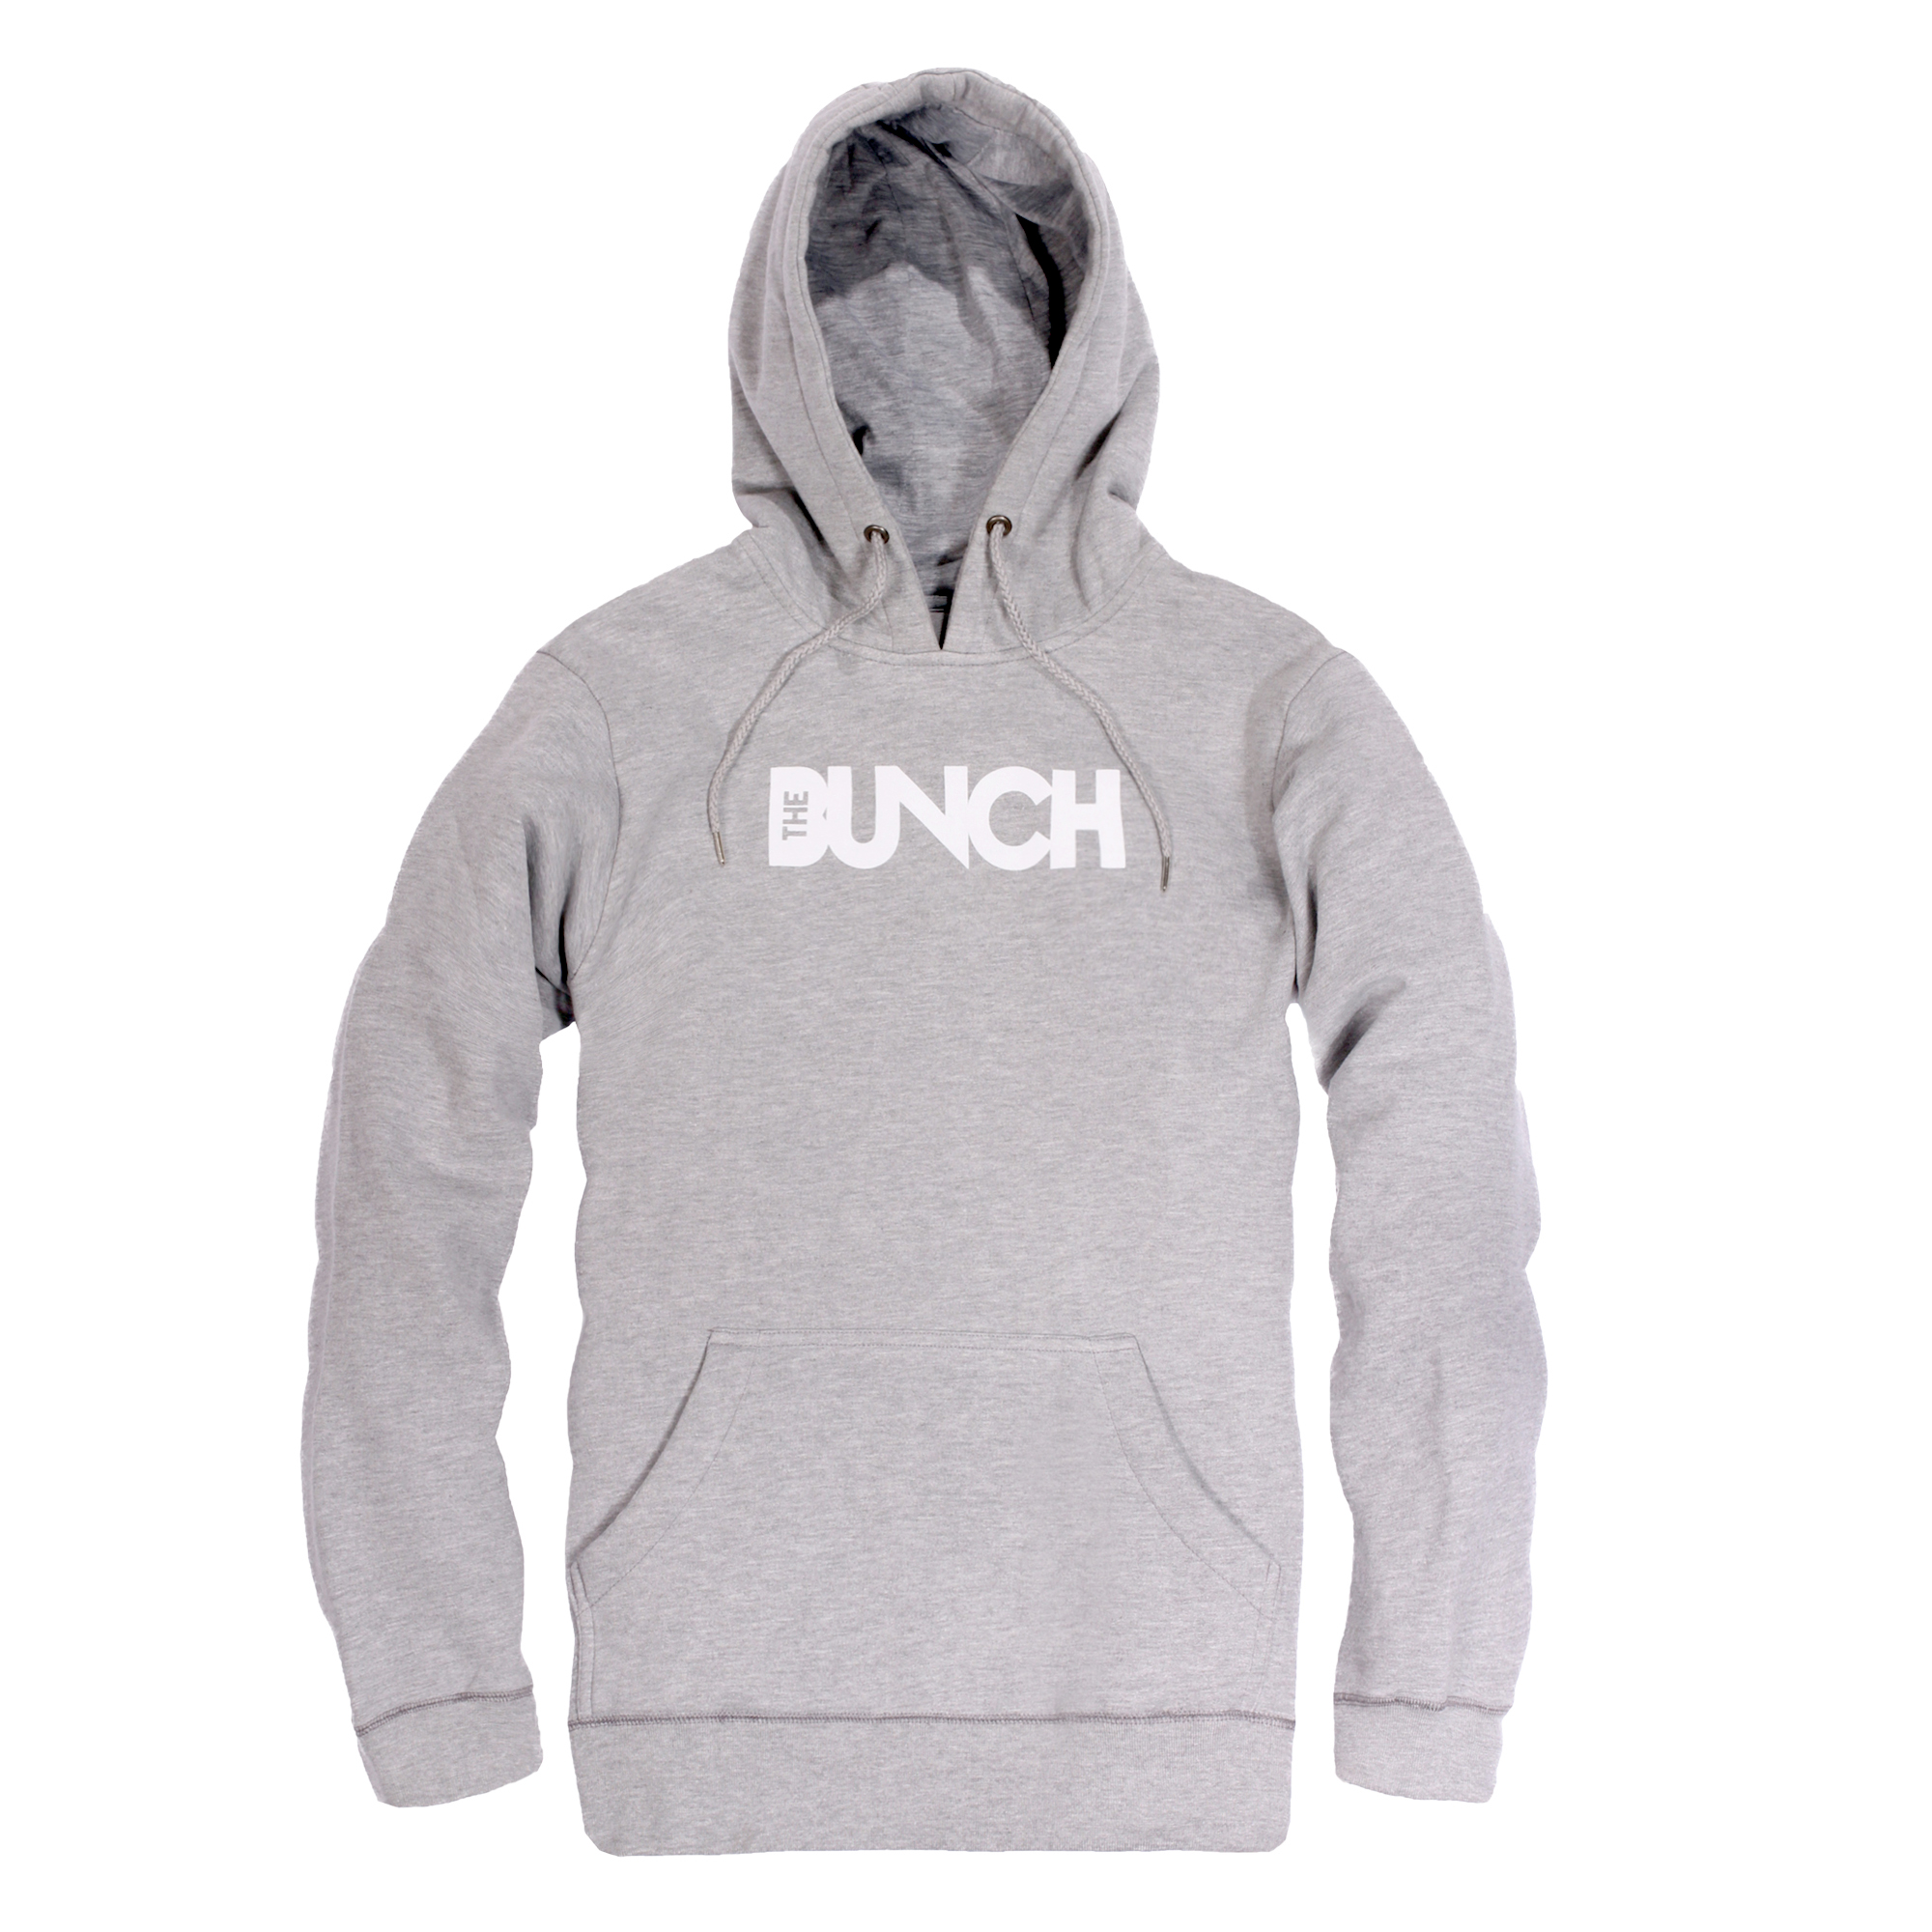 TheBunch_HoodieGrey_1 copy.jpg